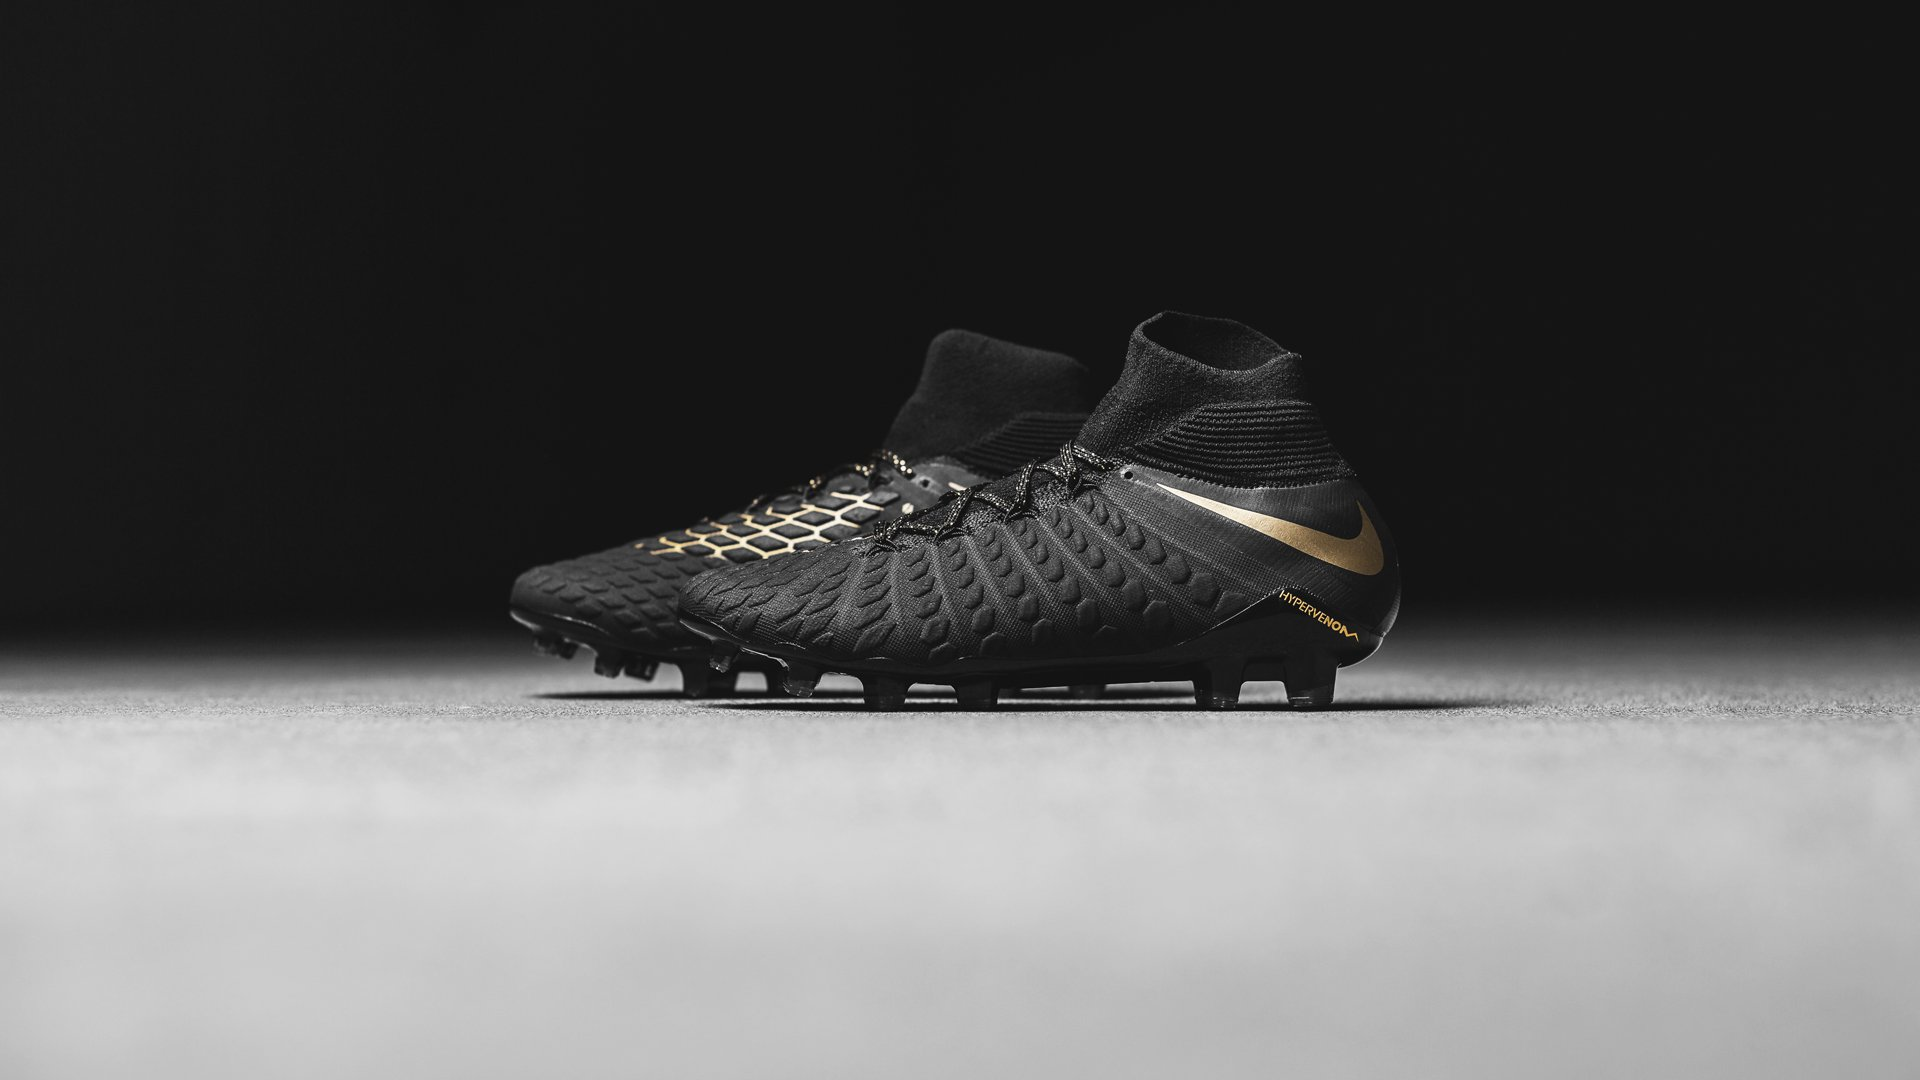 new product 5a0d4 bed9e Nike introduces the new Hypervenom Game of Gold